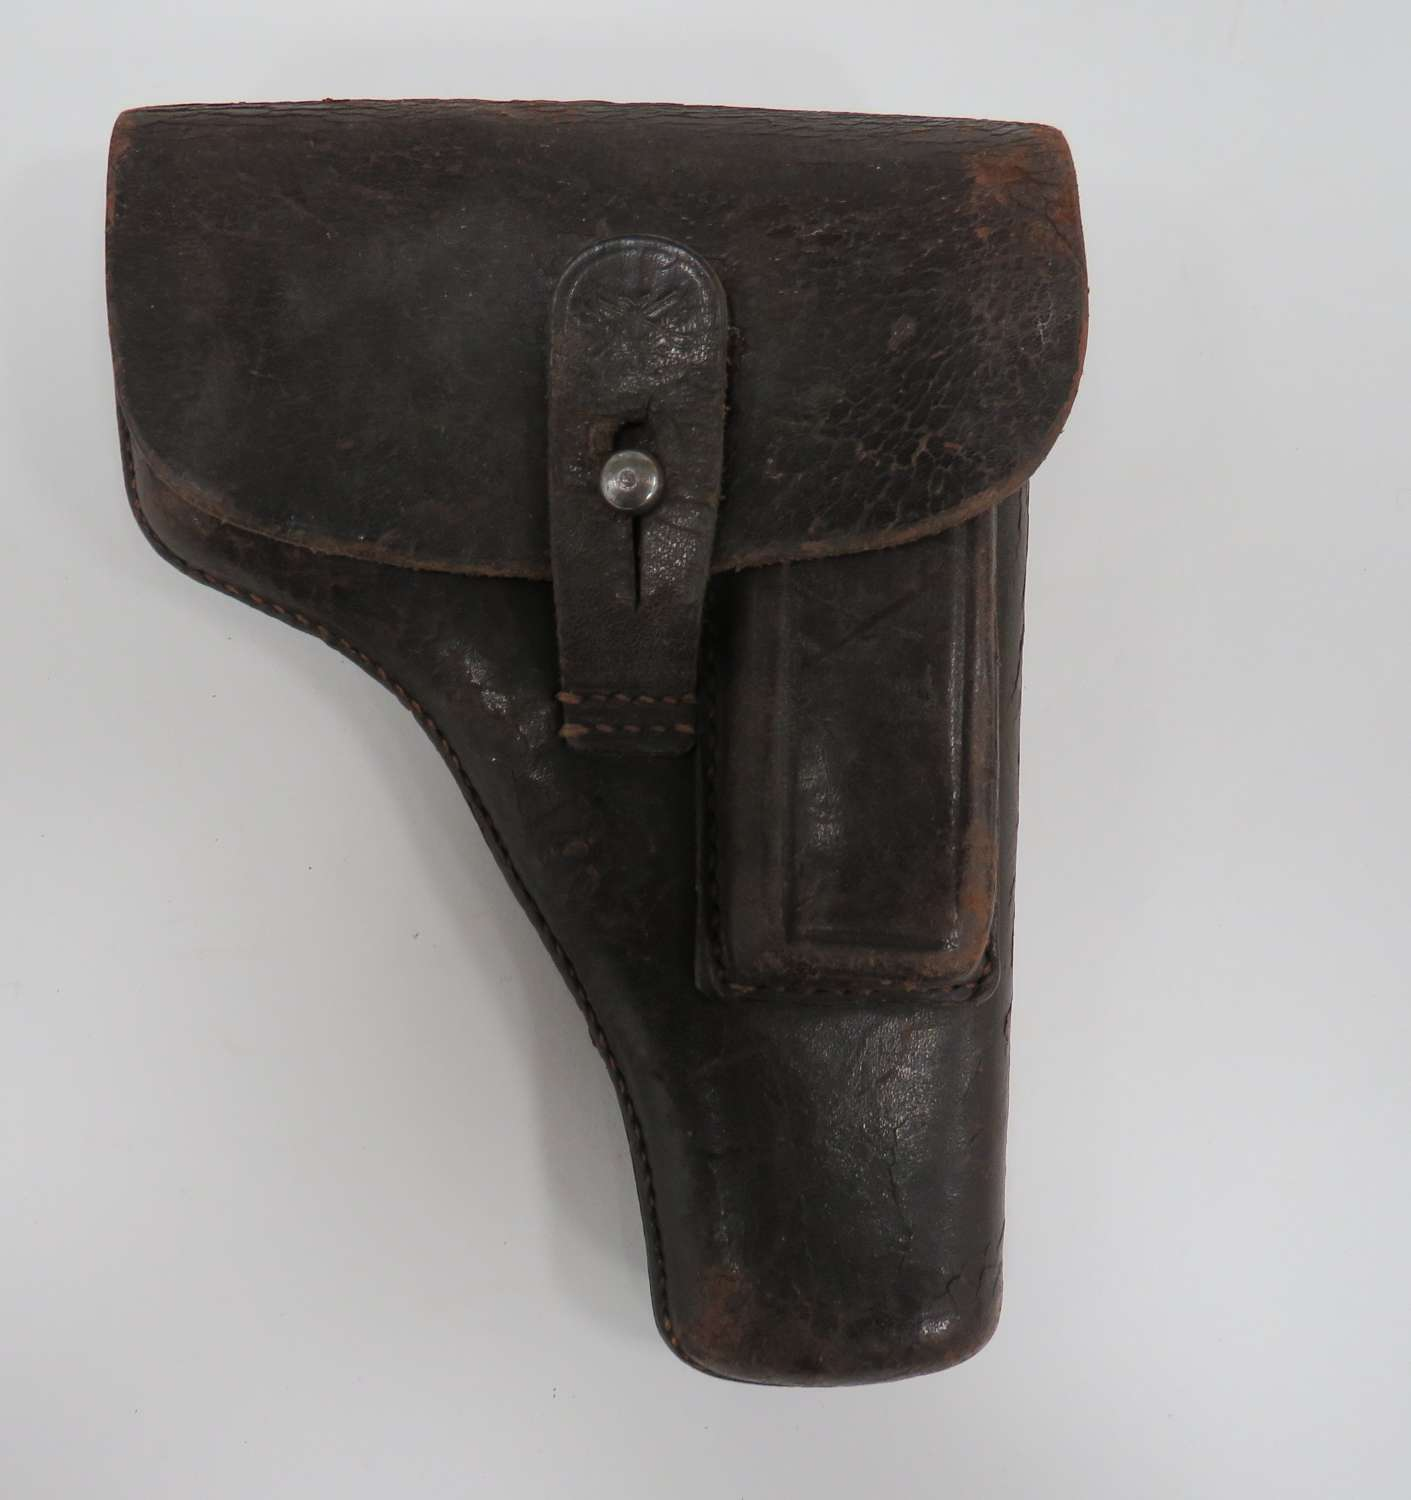 WW 2 German Small Automatic Pistol Holster